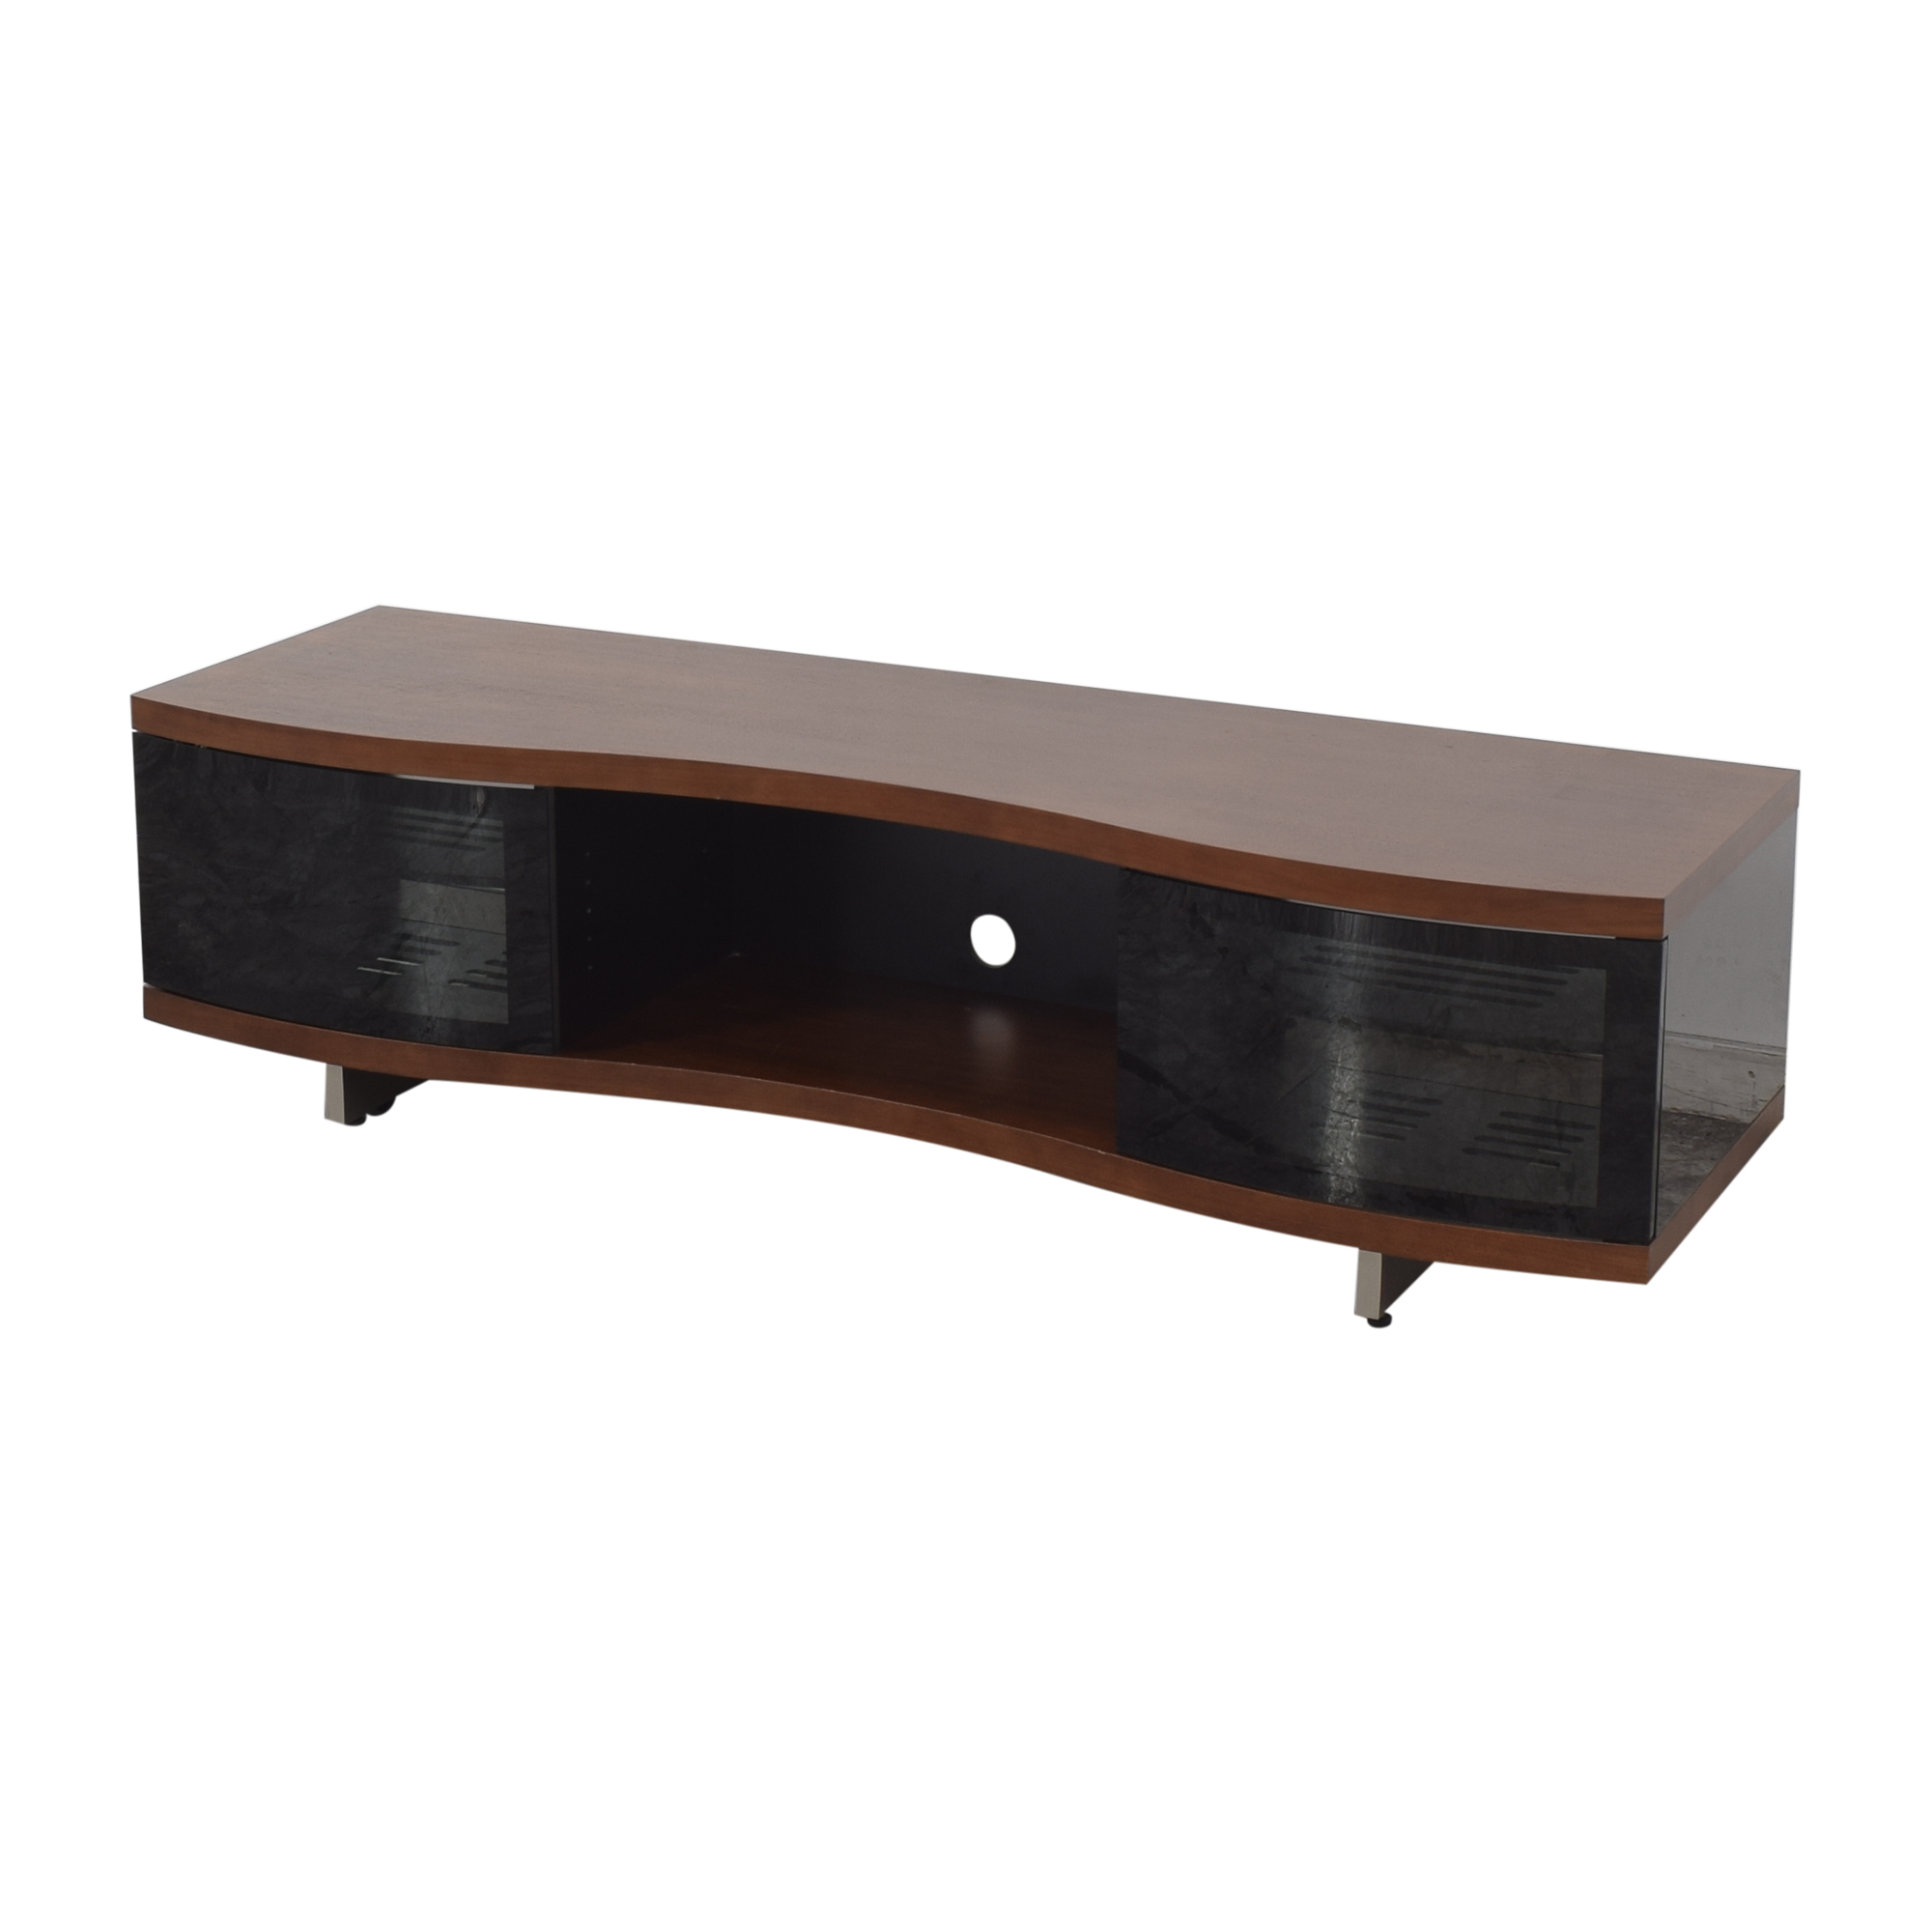 BDI Furniture BDI Furniture Ola Media Cabinet for sale